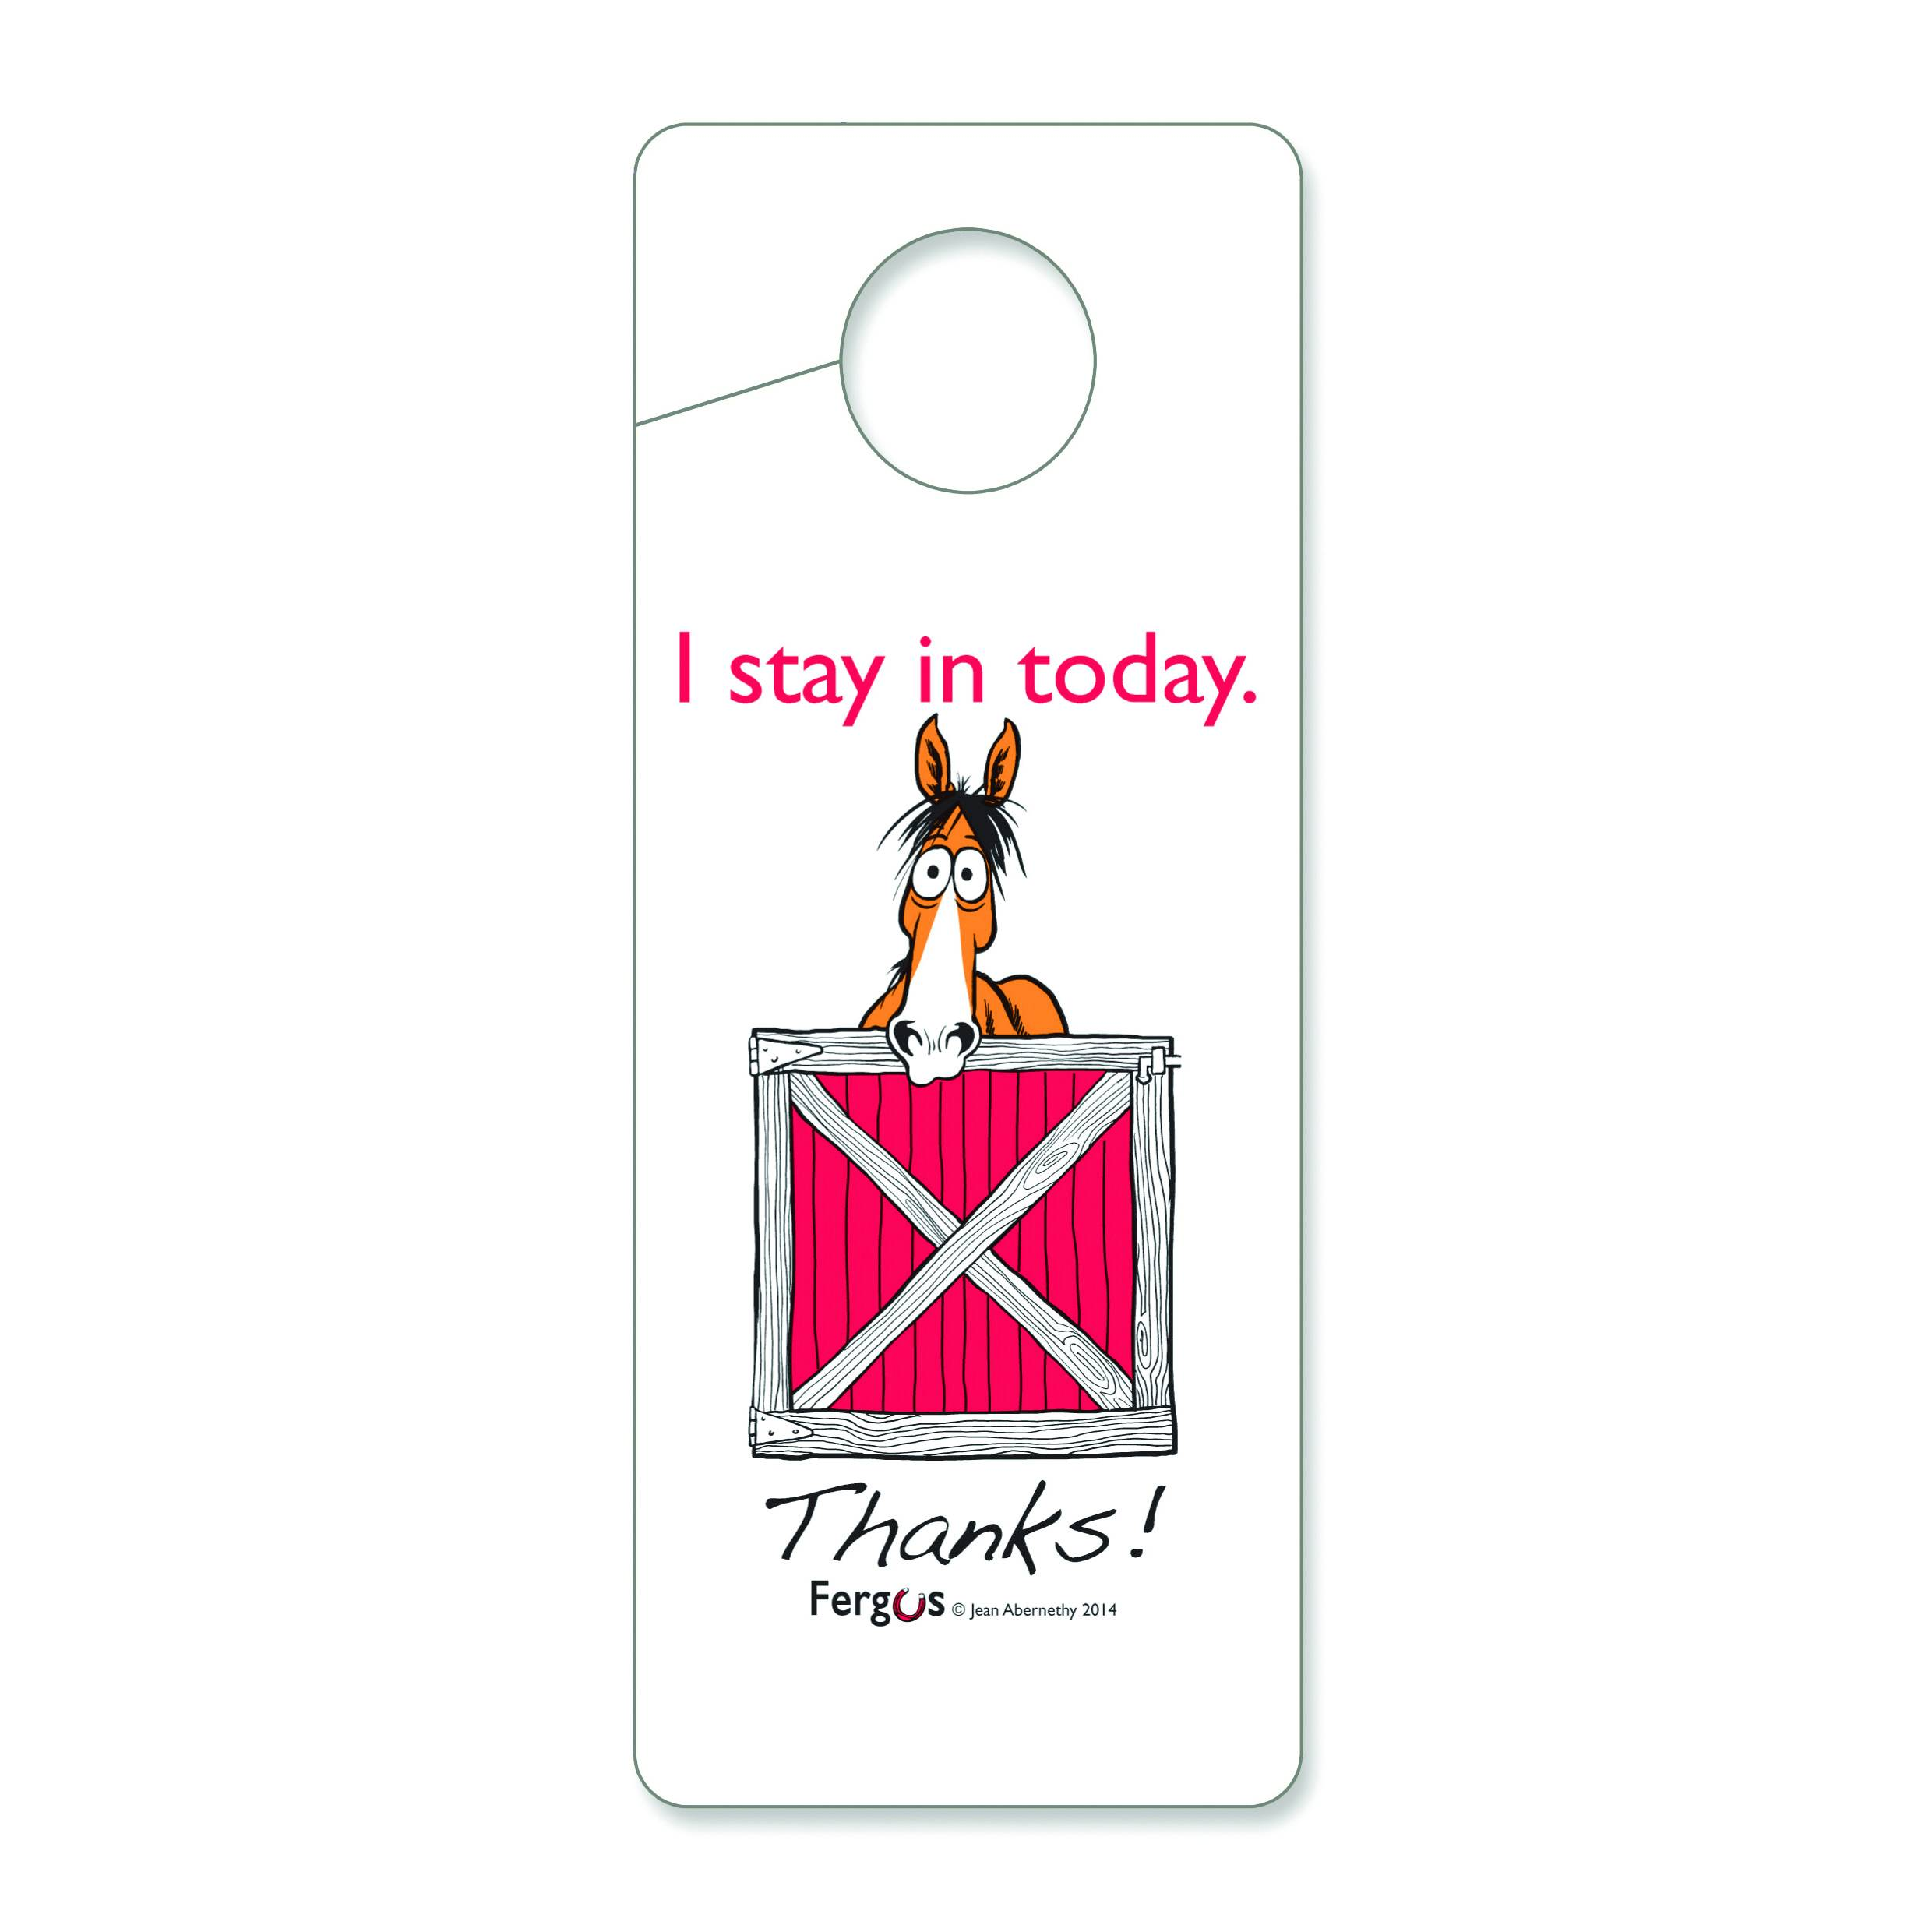 Fergus Stall Door Hanger ''I Stay In''